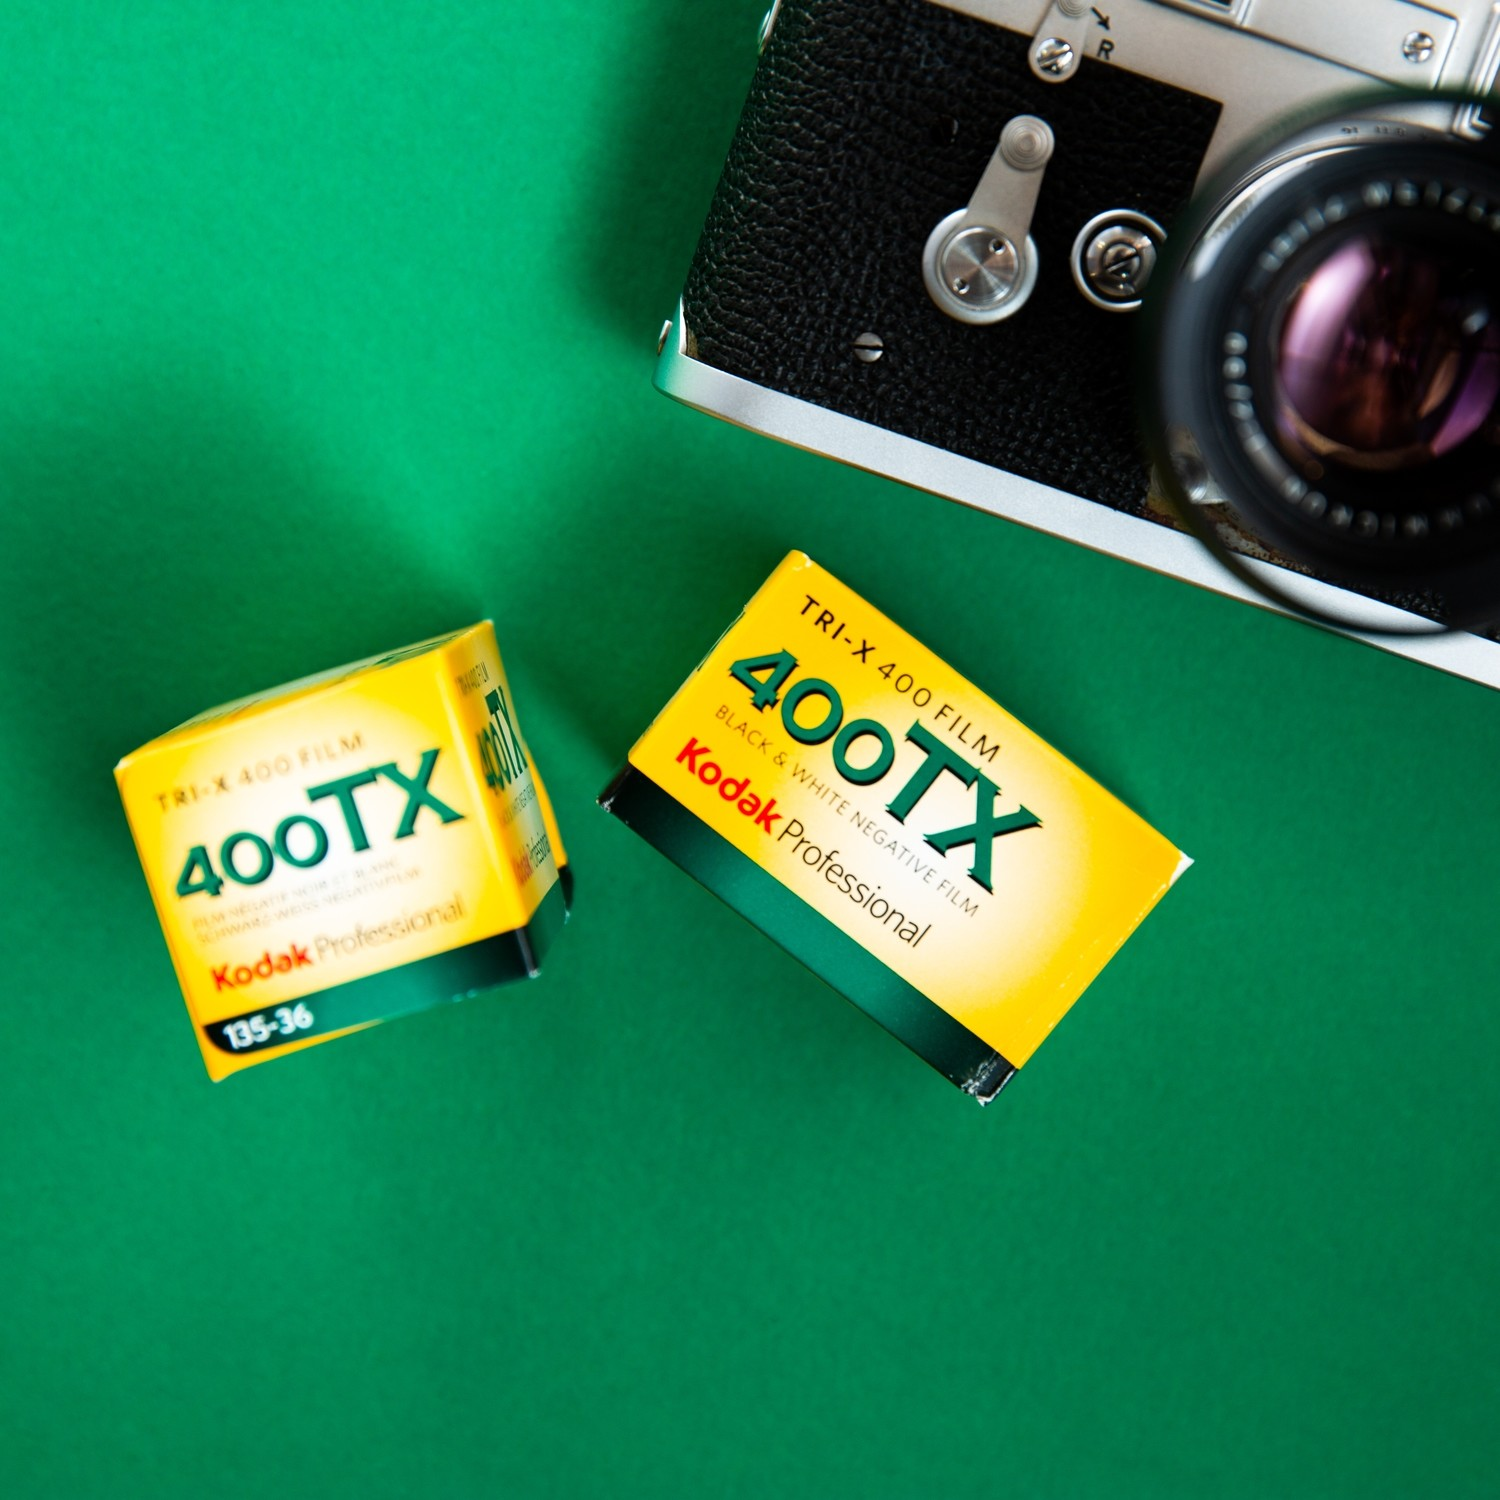 Kodak Tri-X 400 35 Size 36 Exposures - From $6.50 a Roll!